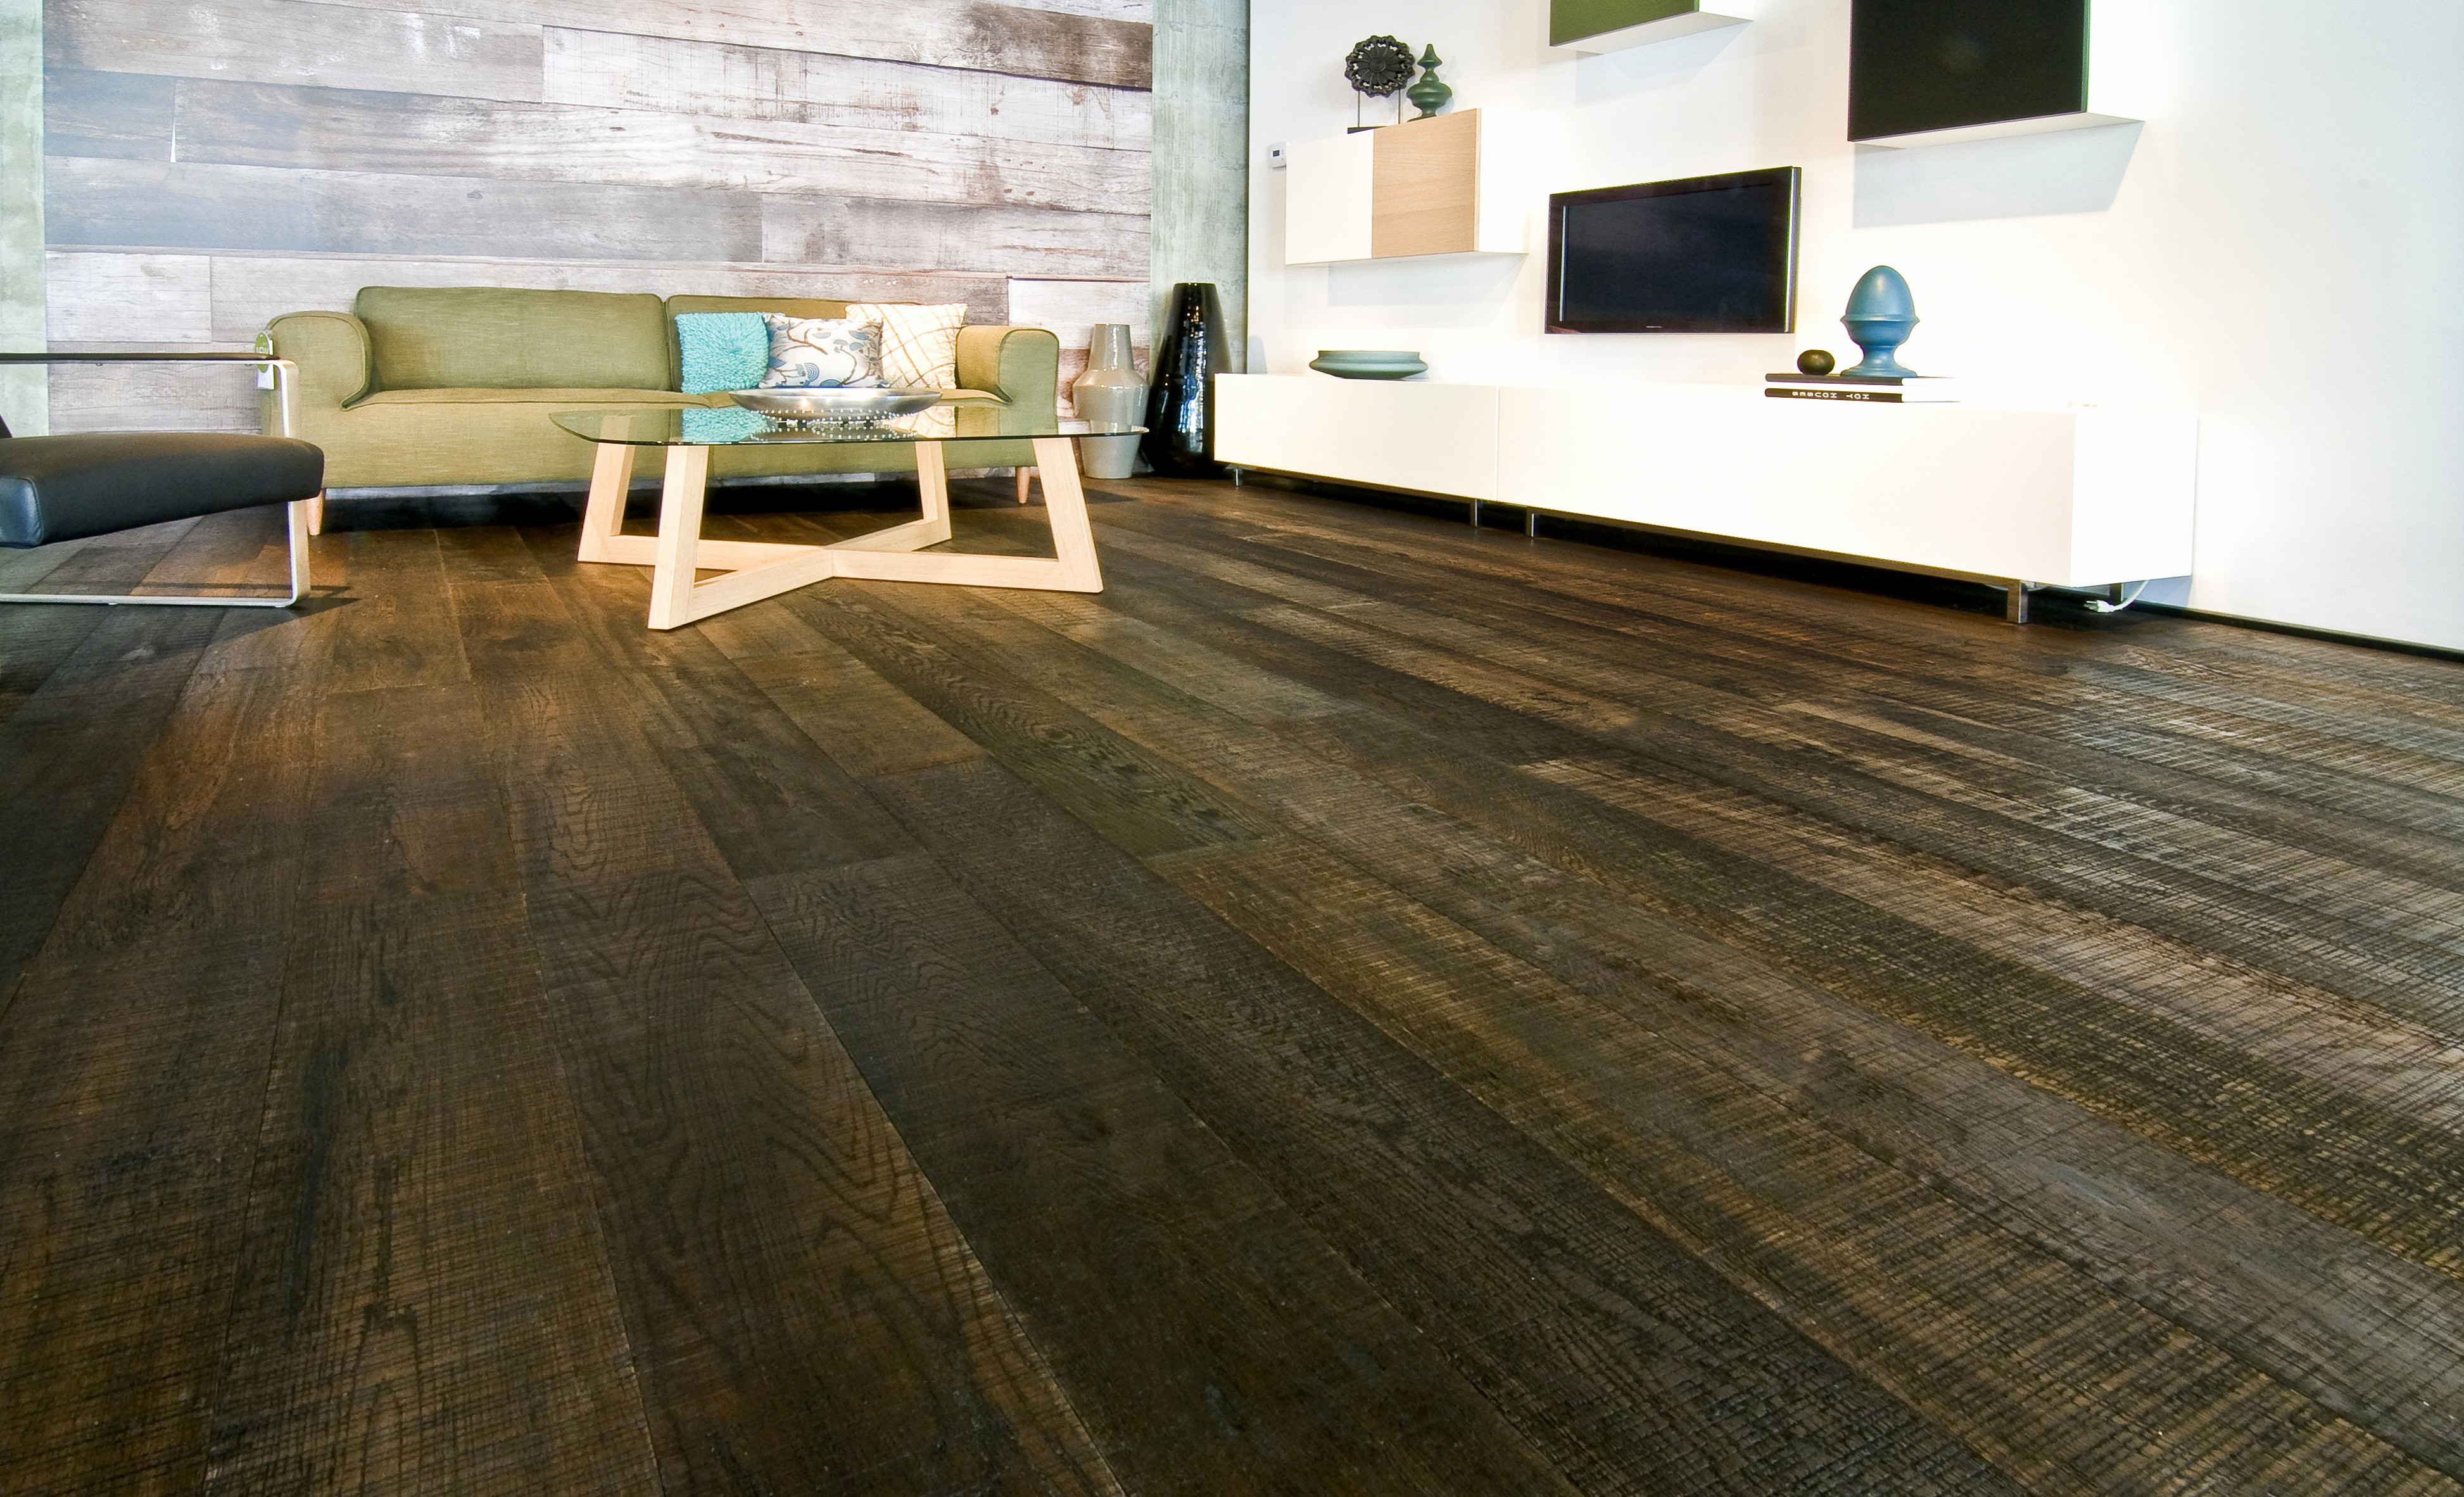 Maple Hardwood Flooring Of Hardwood Floor Refinishing Tampa Awesome New Gray Stained Maple for Hardwood Floor Refinishing Tampa Luxury Engaging Discount Hardwood Flooring 5 where to Buy Inspirational 0d Hardwood Floor